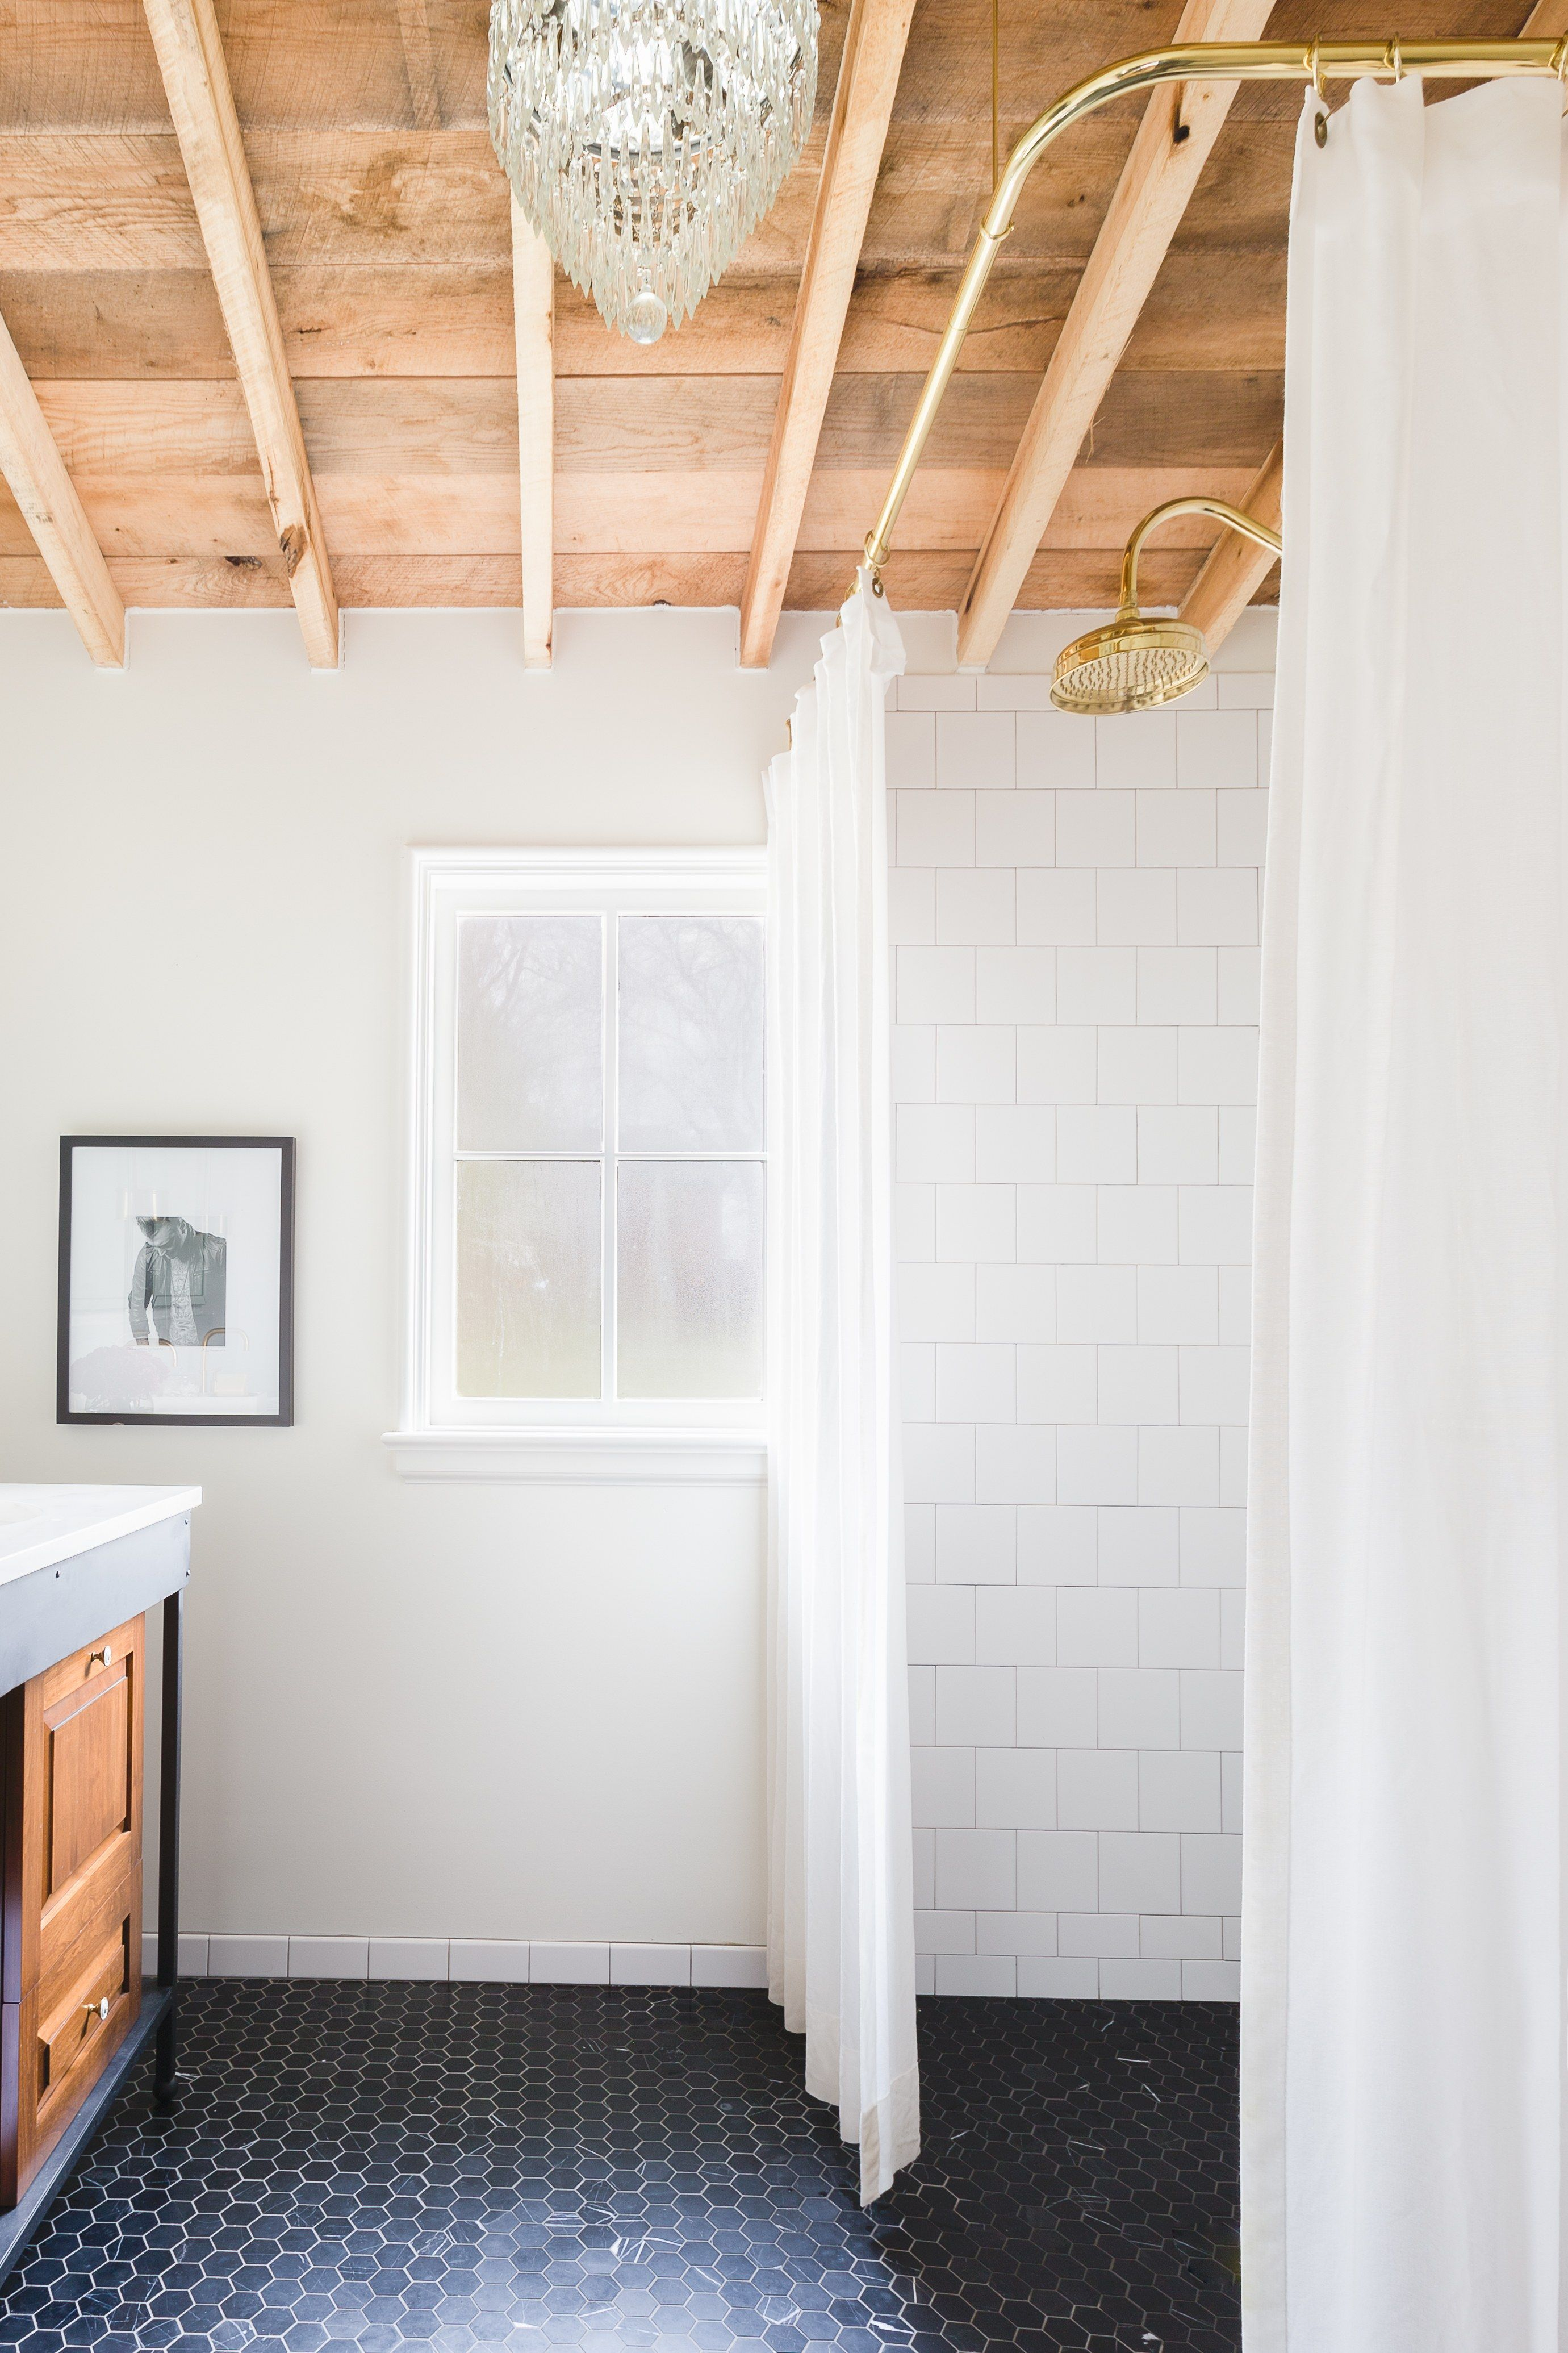 How to turn an old fashioned bathroom into modern | Small spaces ...